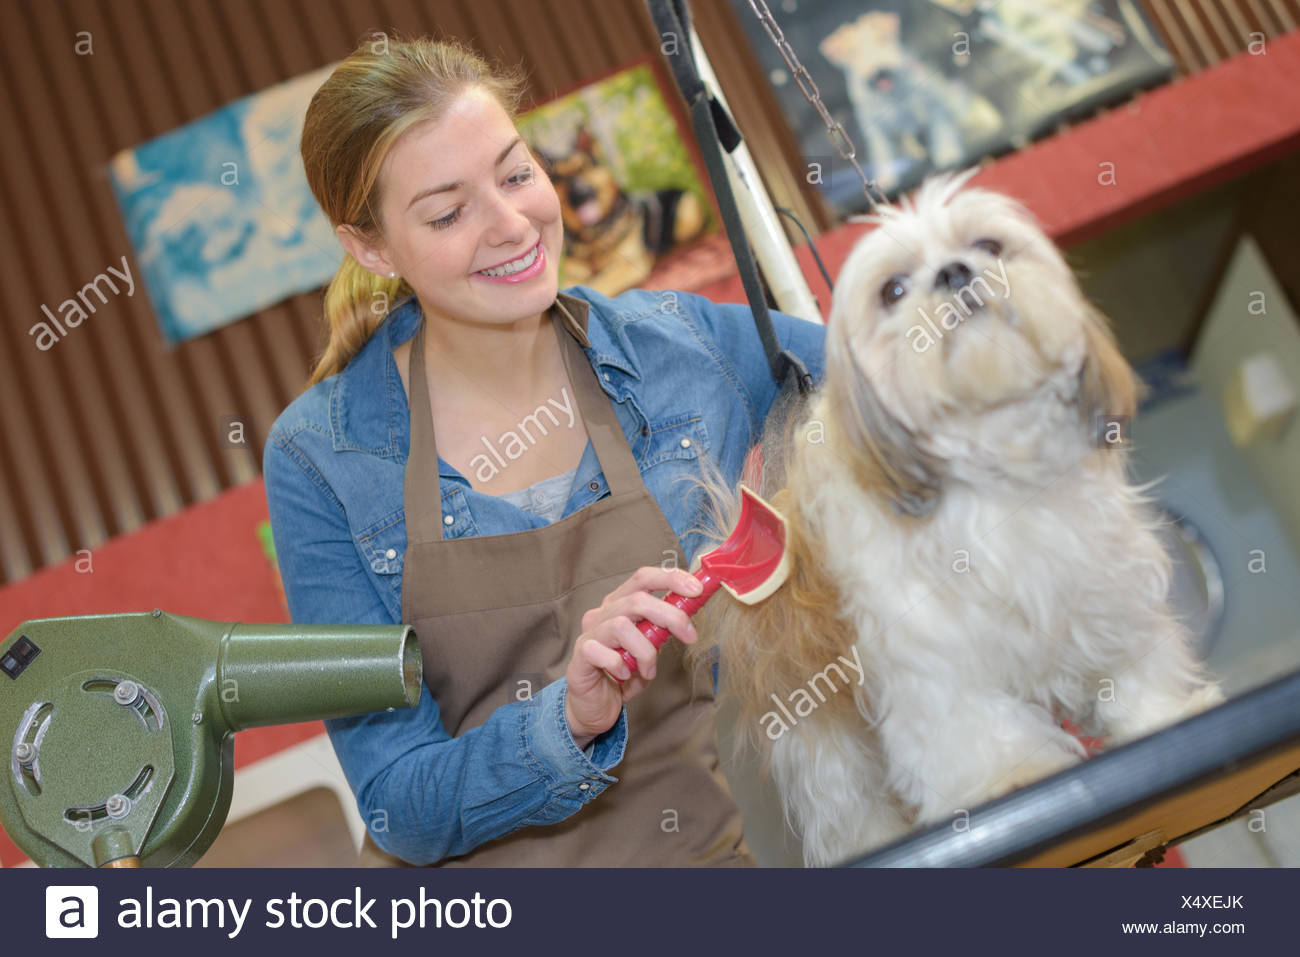 beauty parlour for dogs Stock Photo: 278406763 - Alamy